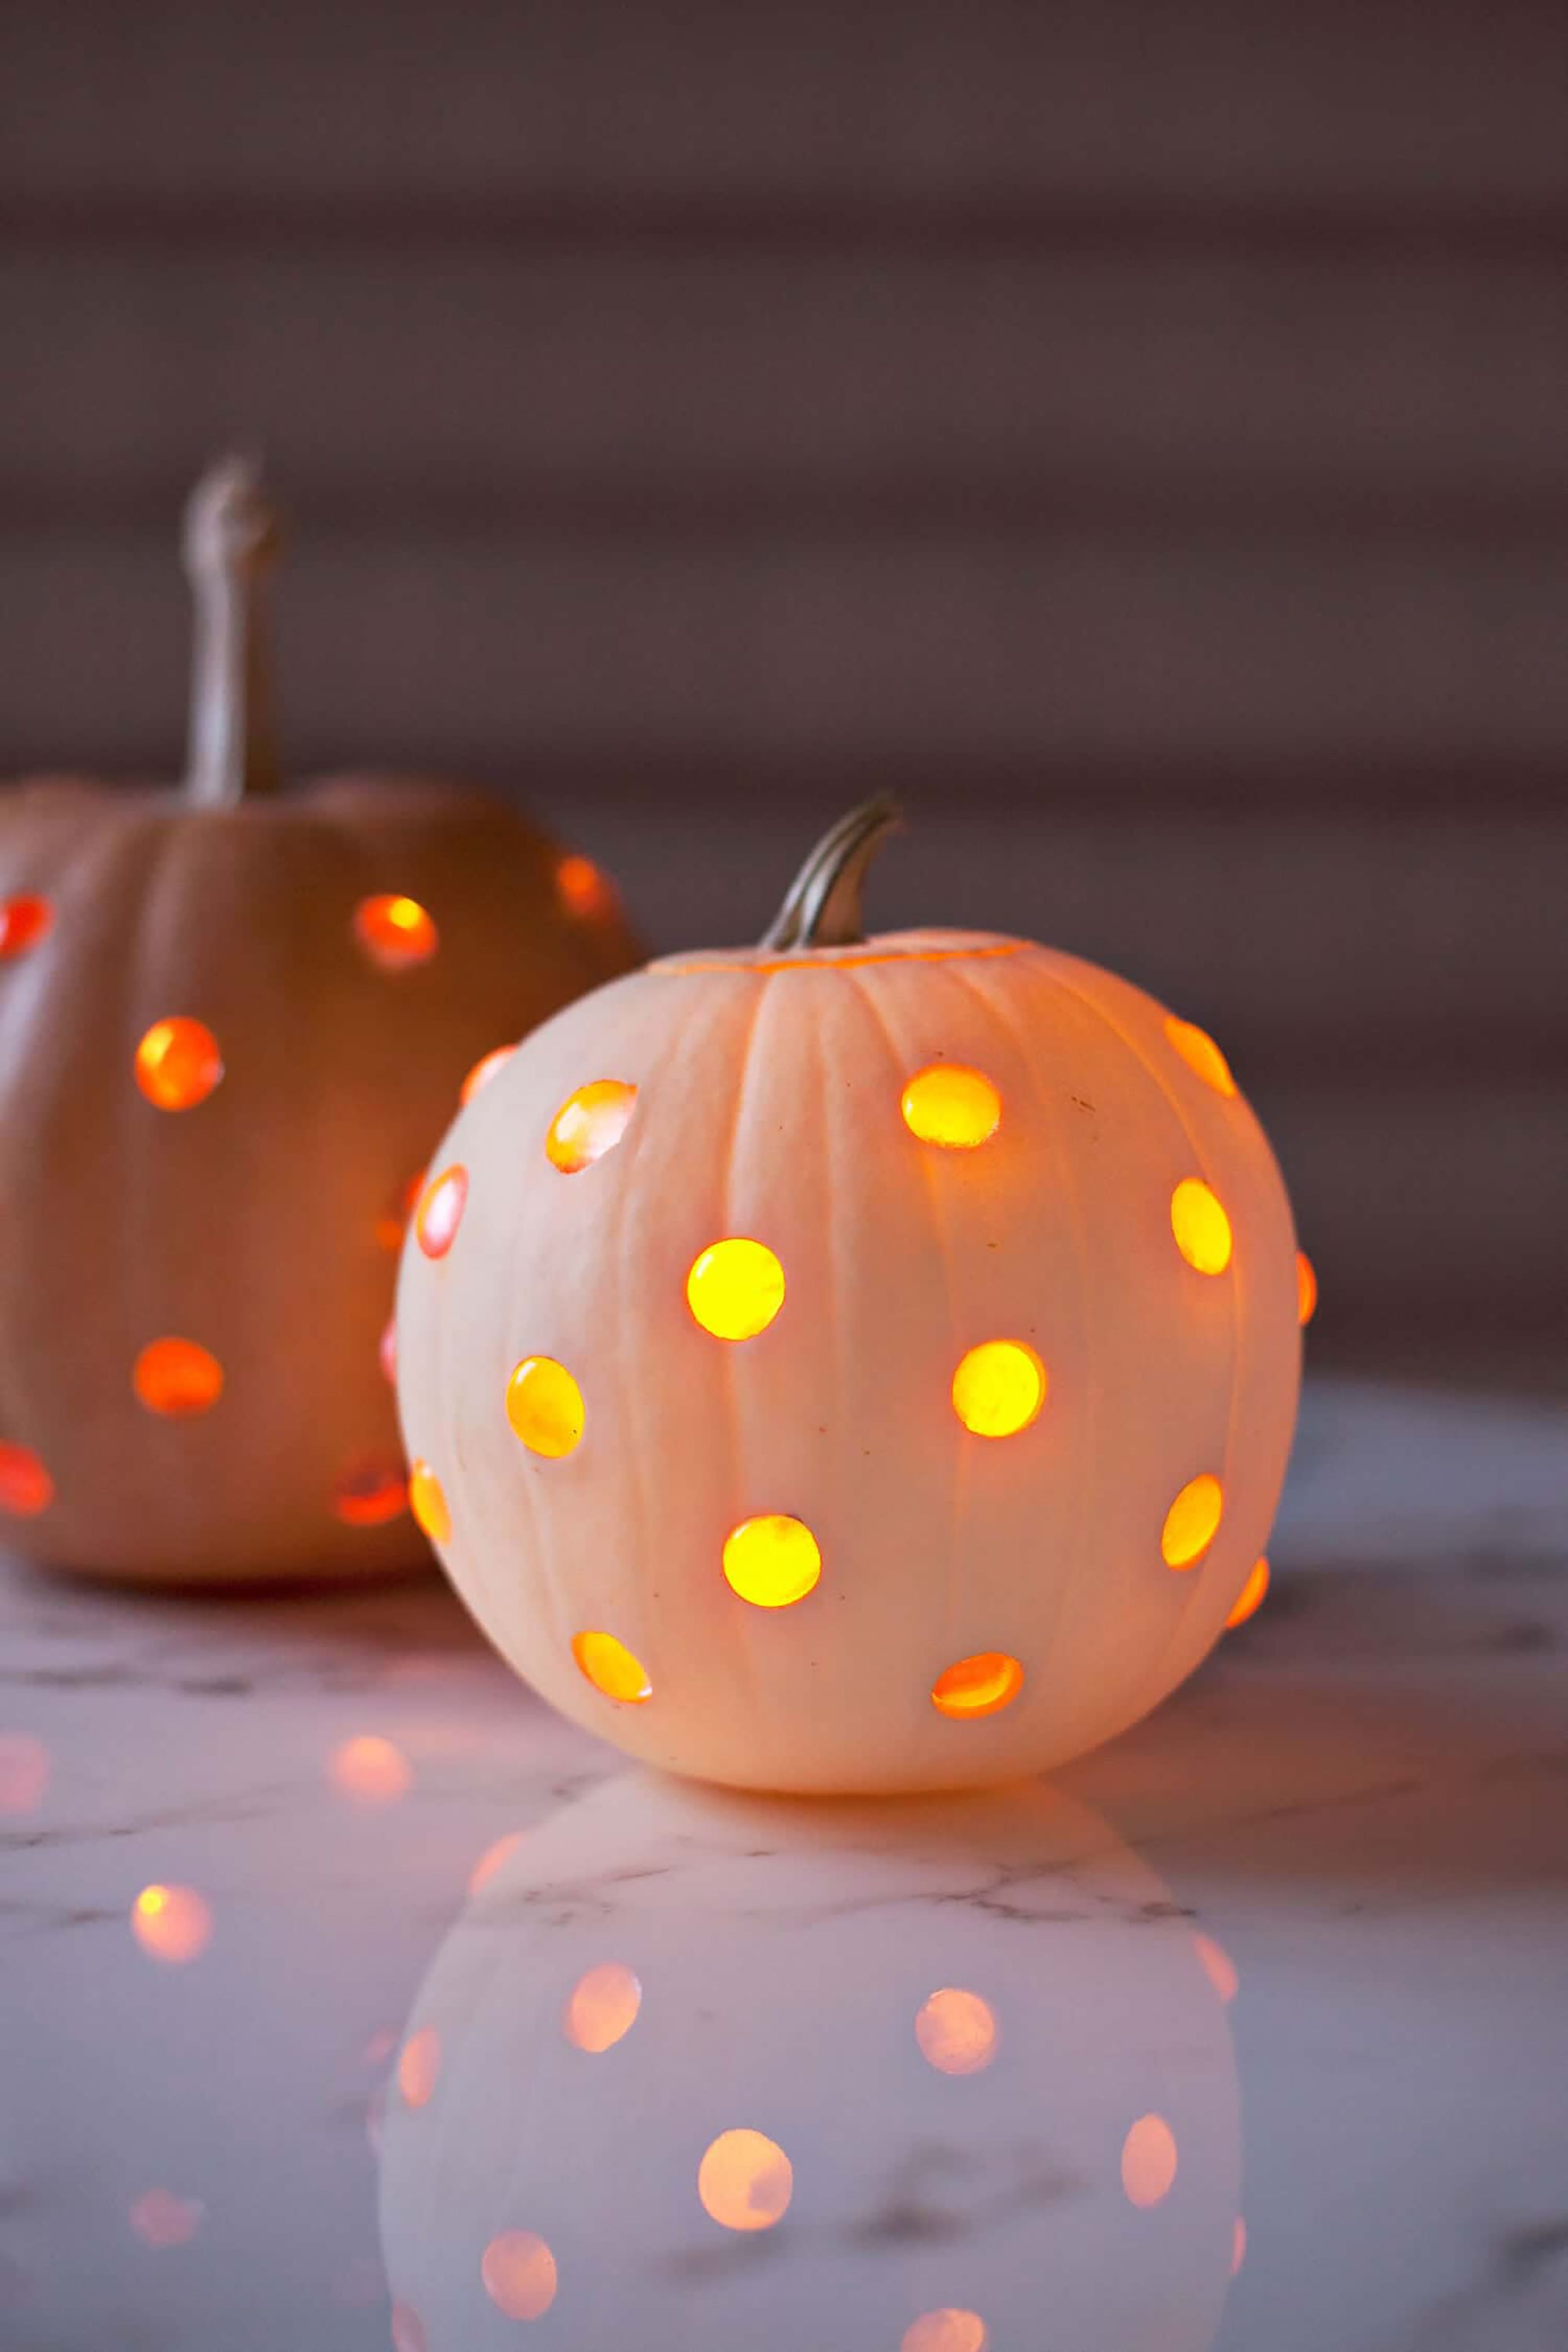 60 best pumpkin carving ideas halloween 2018 - creative jack o